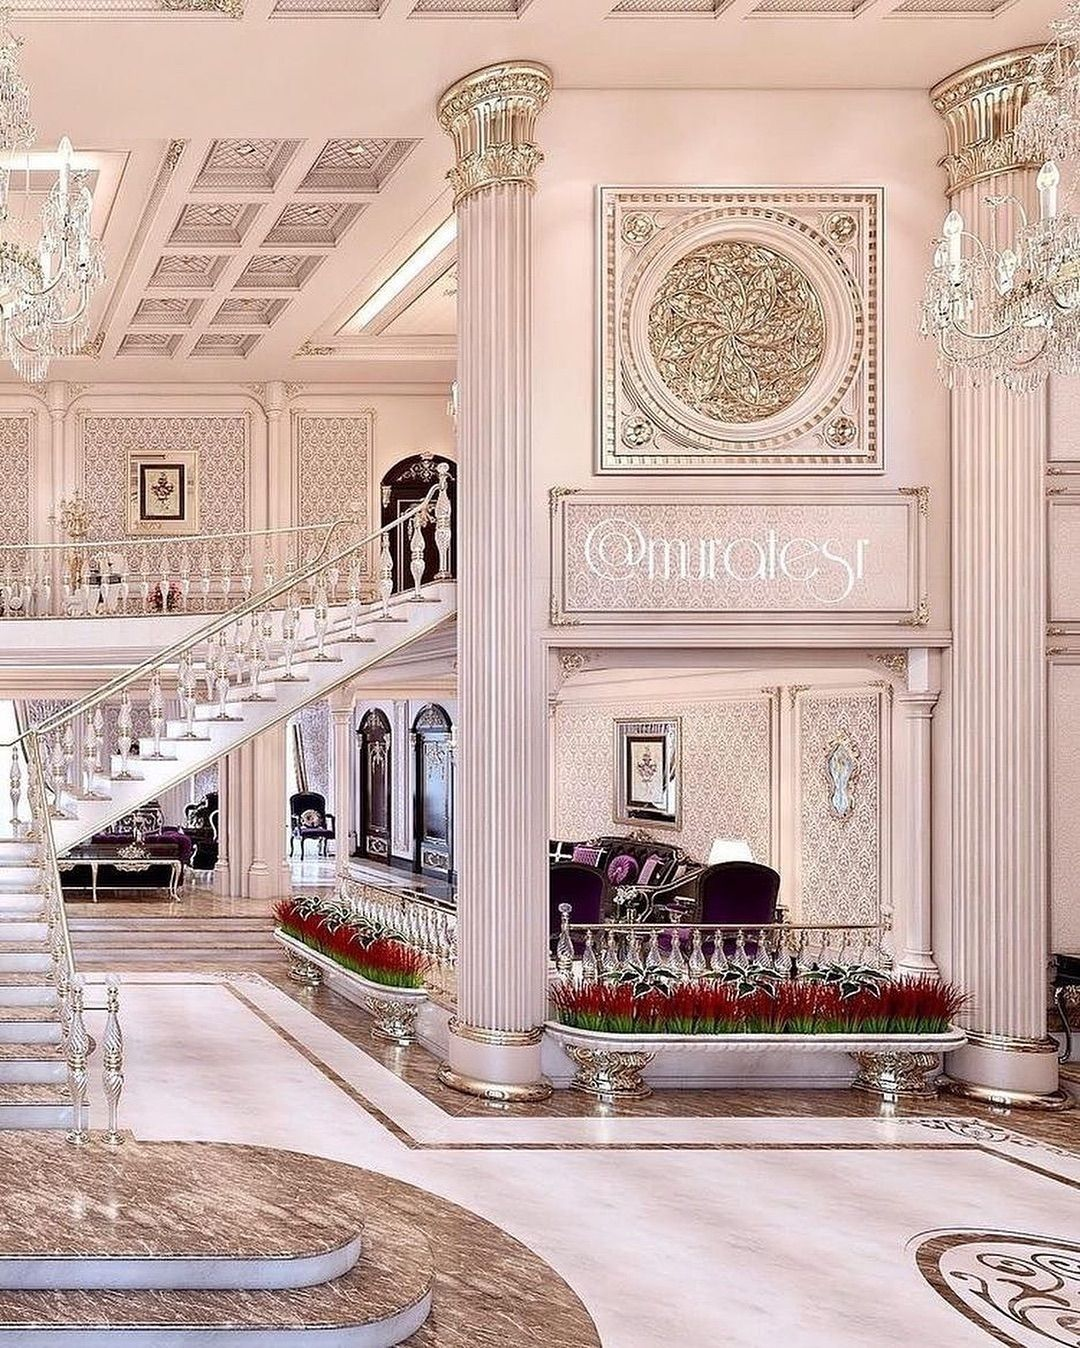 20 Dream Home Interior Design Ideas For 2019 Dream Home Designing Hit The Wow Button Every House Interior Design Styles Mansion Interior Dream Home Design